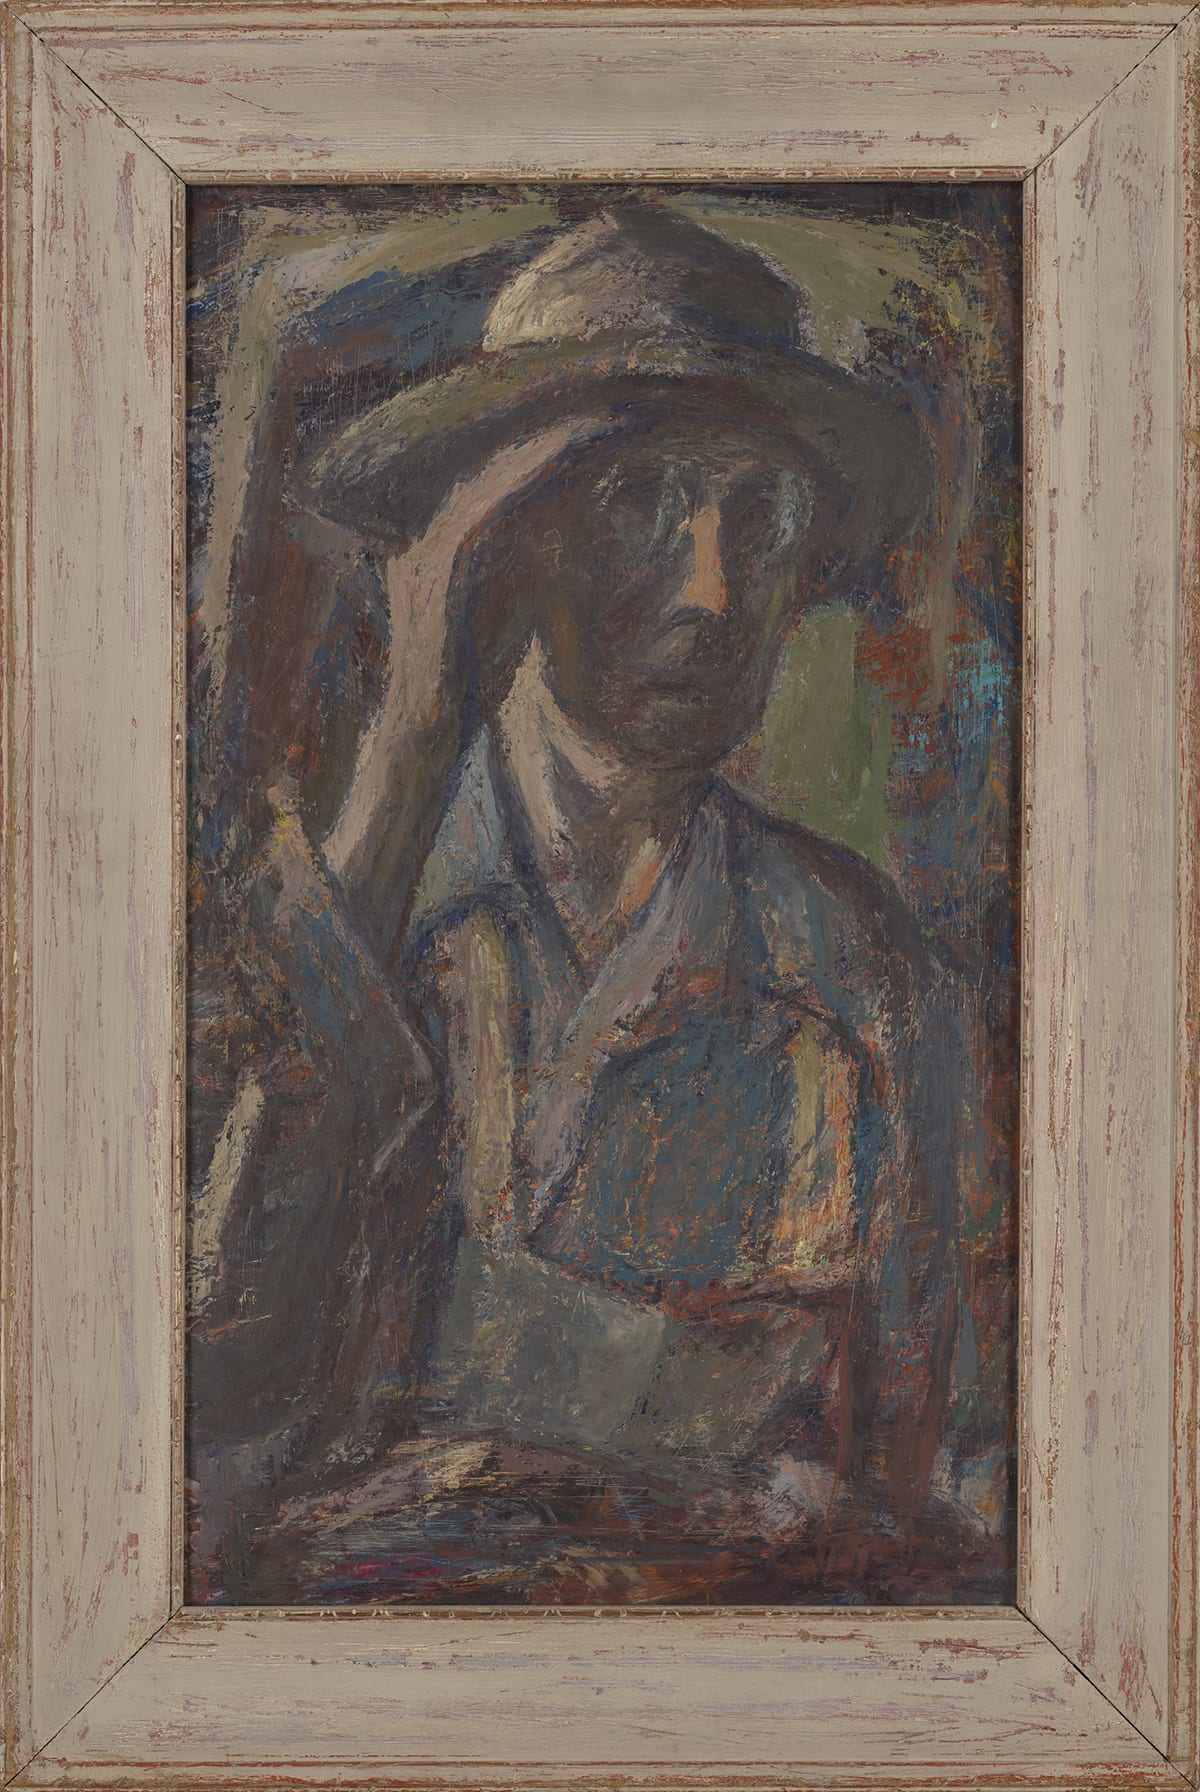 Self-Portrait, Amanda Snyder, 23 inches x 13 ½ inches, oil on masonite. A vertical, rectangular self-portrait painted using mostly muted tones. The paint is built up in layers and often applied with a dry brush giving a rough look to the brushstrokes and letting the colors of underlayers come through. Amanda is depicted from the waist up, head turned a little towards the right, with lips slightly parted, and her hand cupped to the left side of her face shielding the light from her eyes. Most of the face is in the shadow created by the hand except for the nose which catches some light, and there is light reflected off the lenses of the glasses. The artist is wearing a tan and green, brimmed hat, wire-rim glasses, and a blue, collared shirt with sketchy highlights of tan, green, and orange coming through the brushstrokes and patched here and there. The background is composed much like the rest of the painting in loose, dry, rough brushstrokes of the same muted colors making the background and the central figure appear to merge with each other.